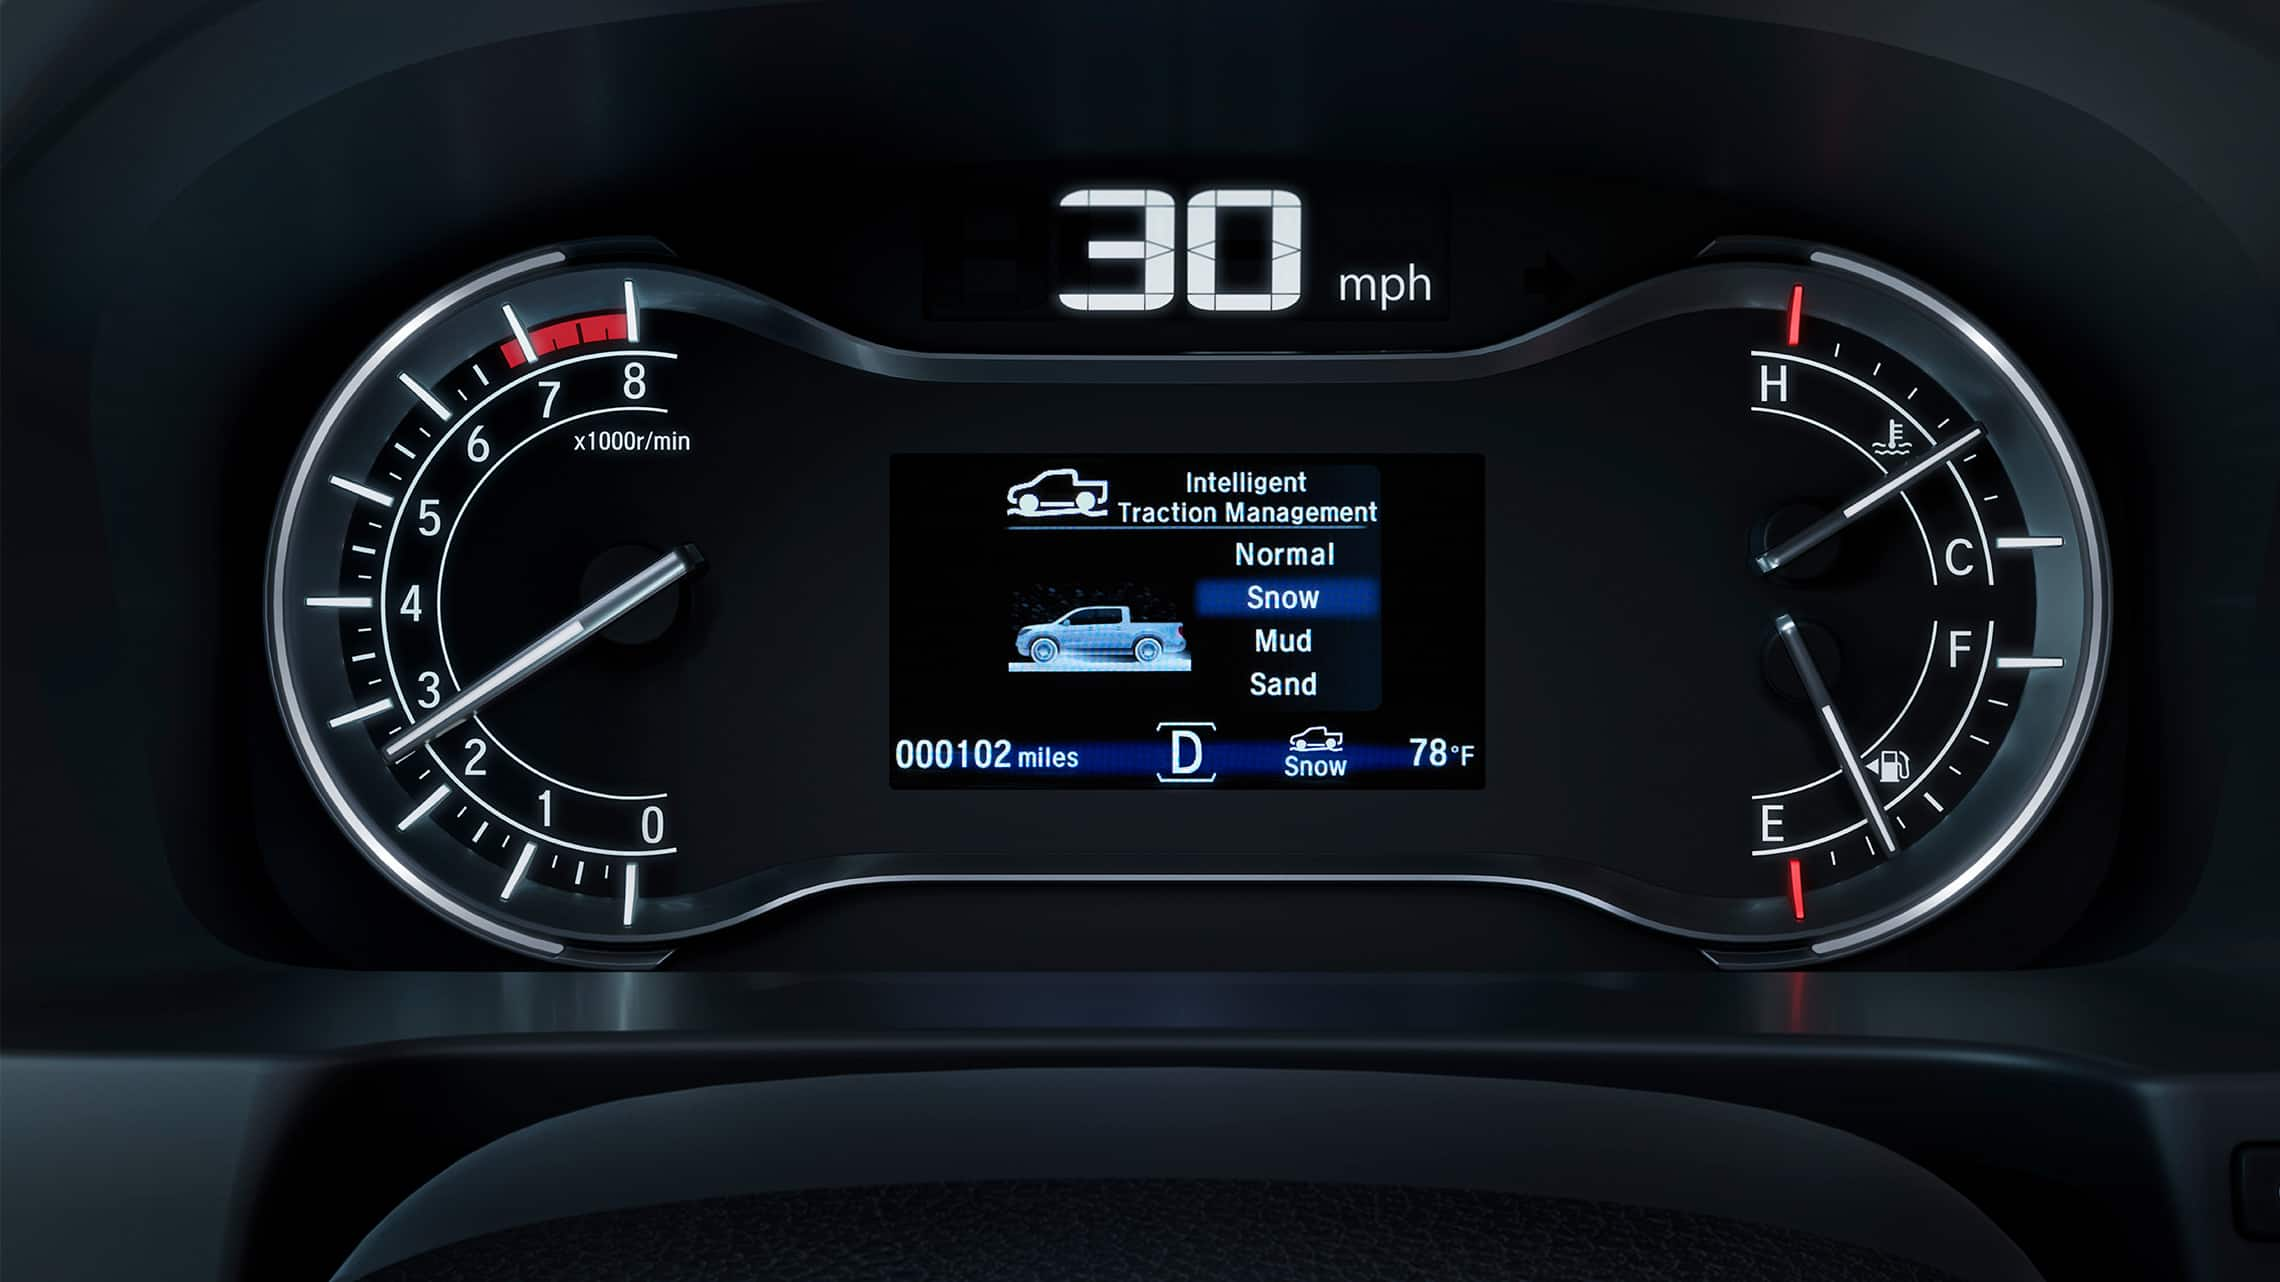 Intelligent Traction Management system display detail in the 2020 Honda Ridgeline RTL-E.